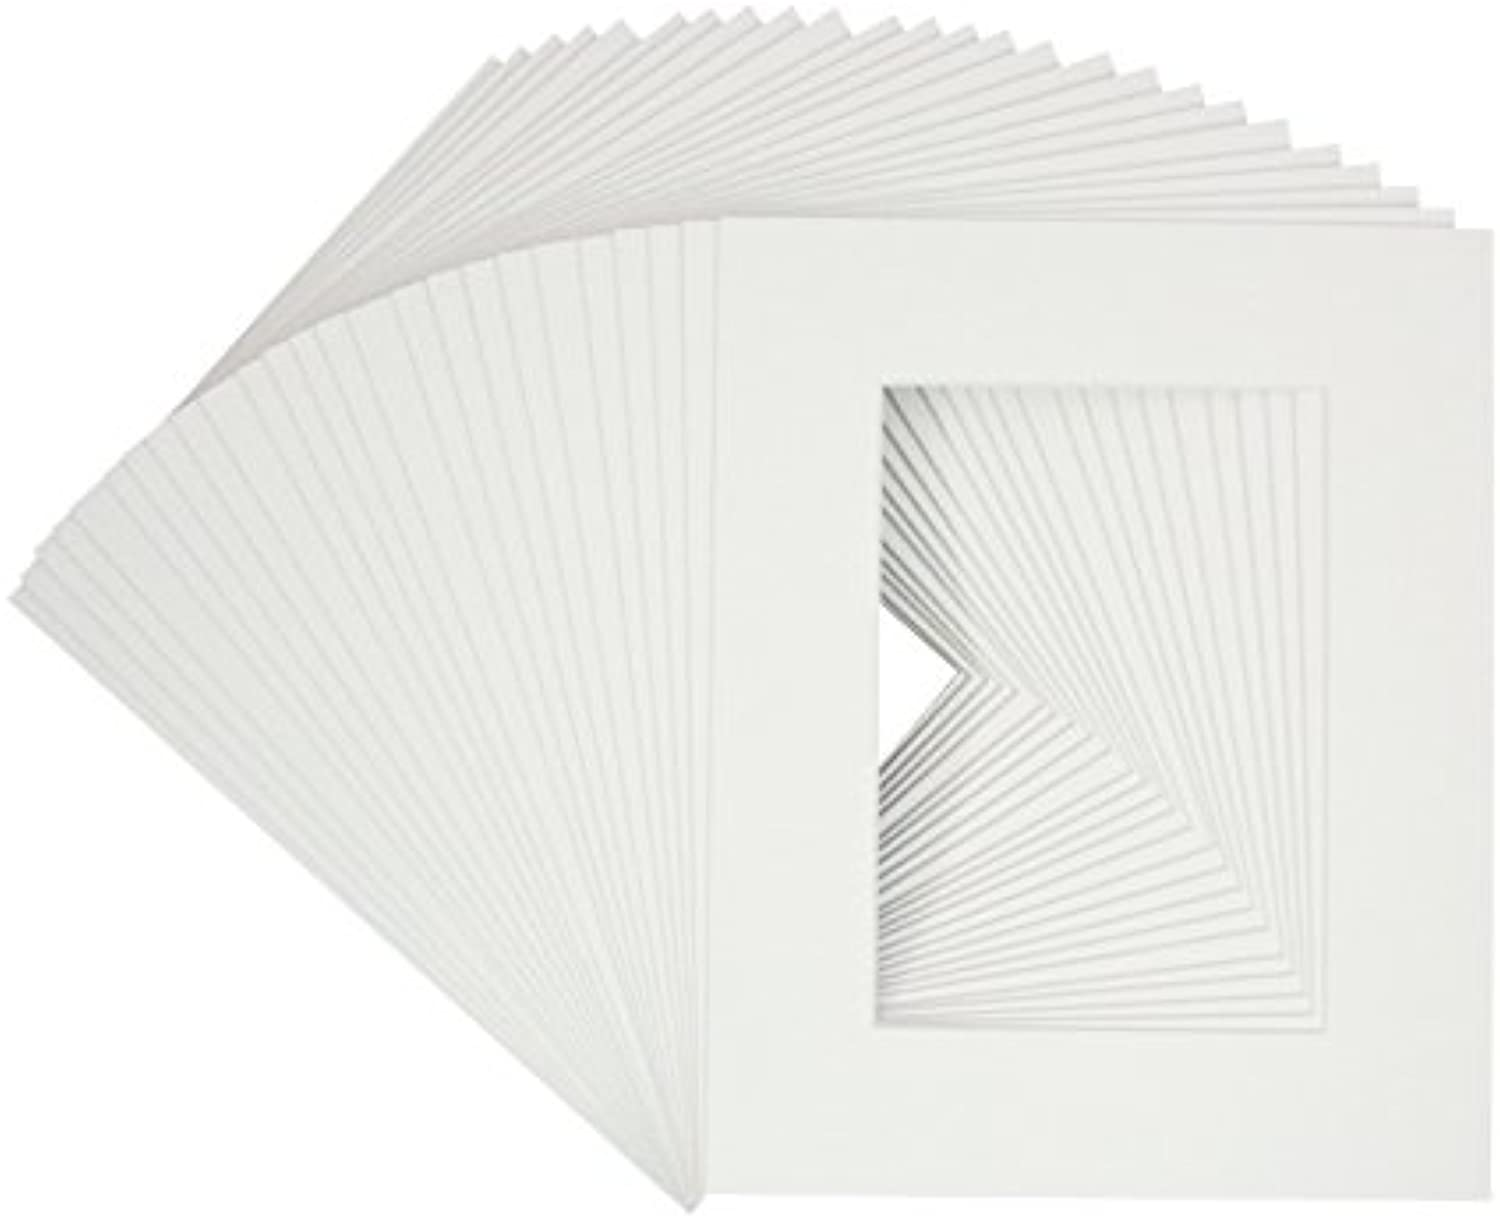 100 8x10 Pre-cut Mats White color Whitecore Fits 4x6 Pictures